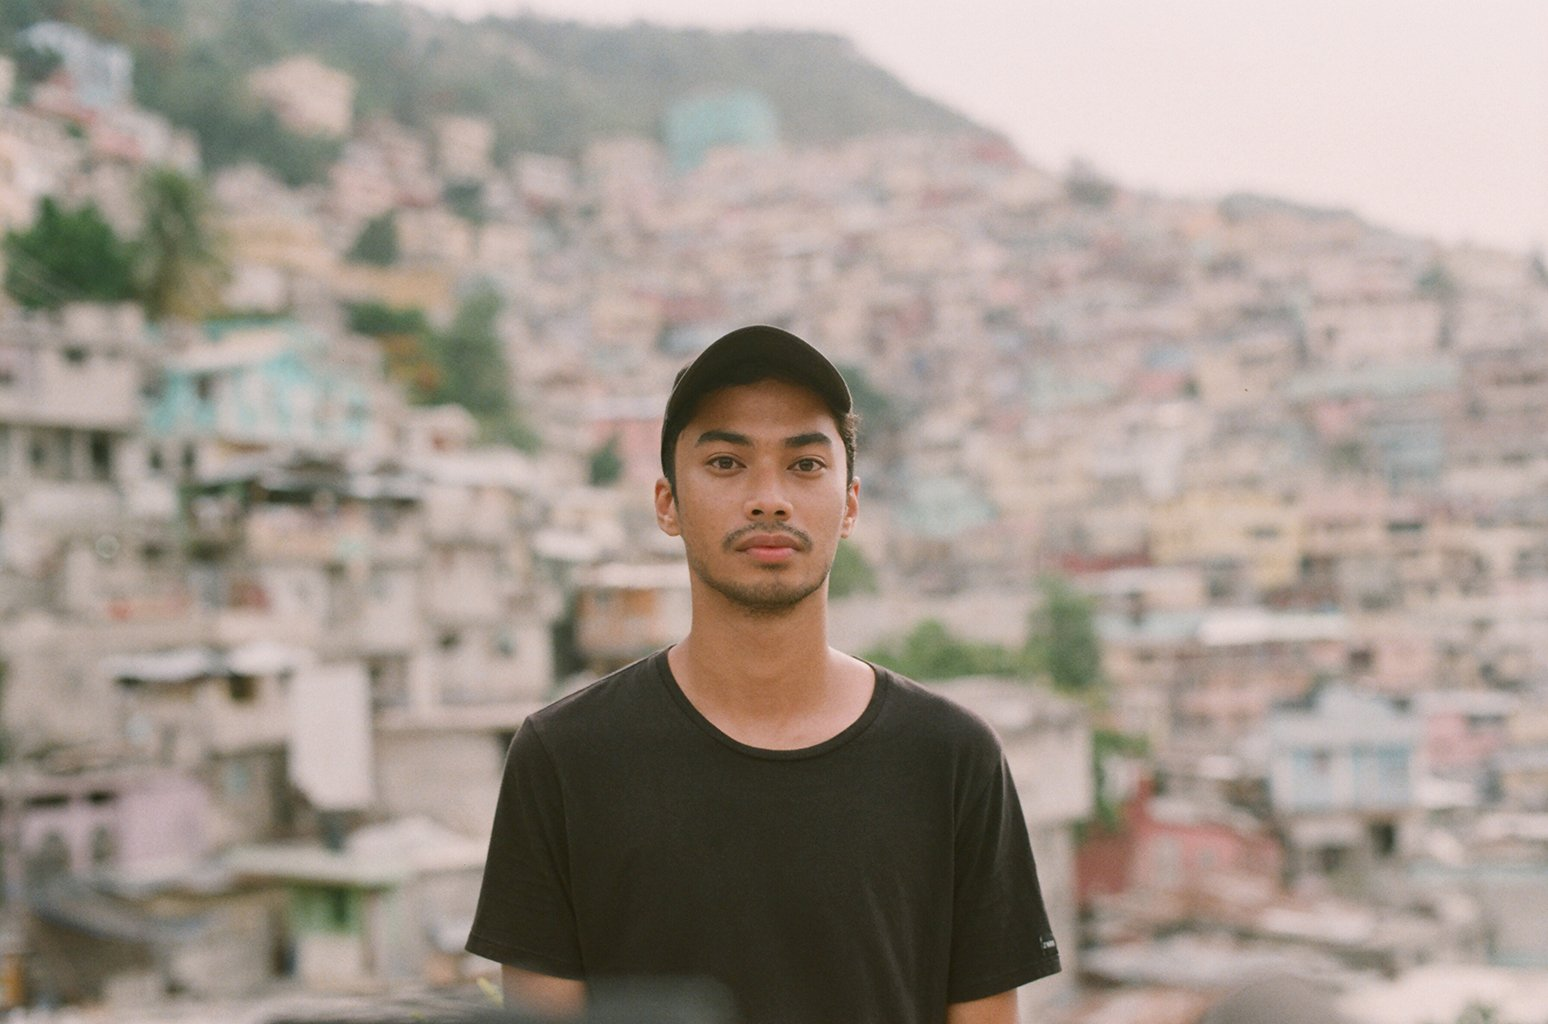 .@MichaelBrun delivers a doubleheader with 'Jalouzi' & 'Soweto' https://t.co/9YJh8gg5bO https://t.co/84vhh6kj5K